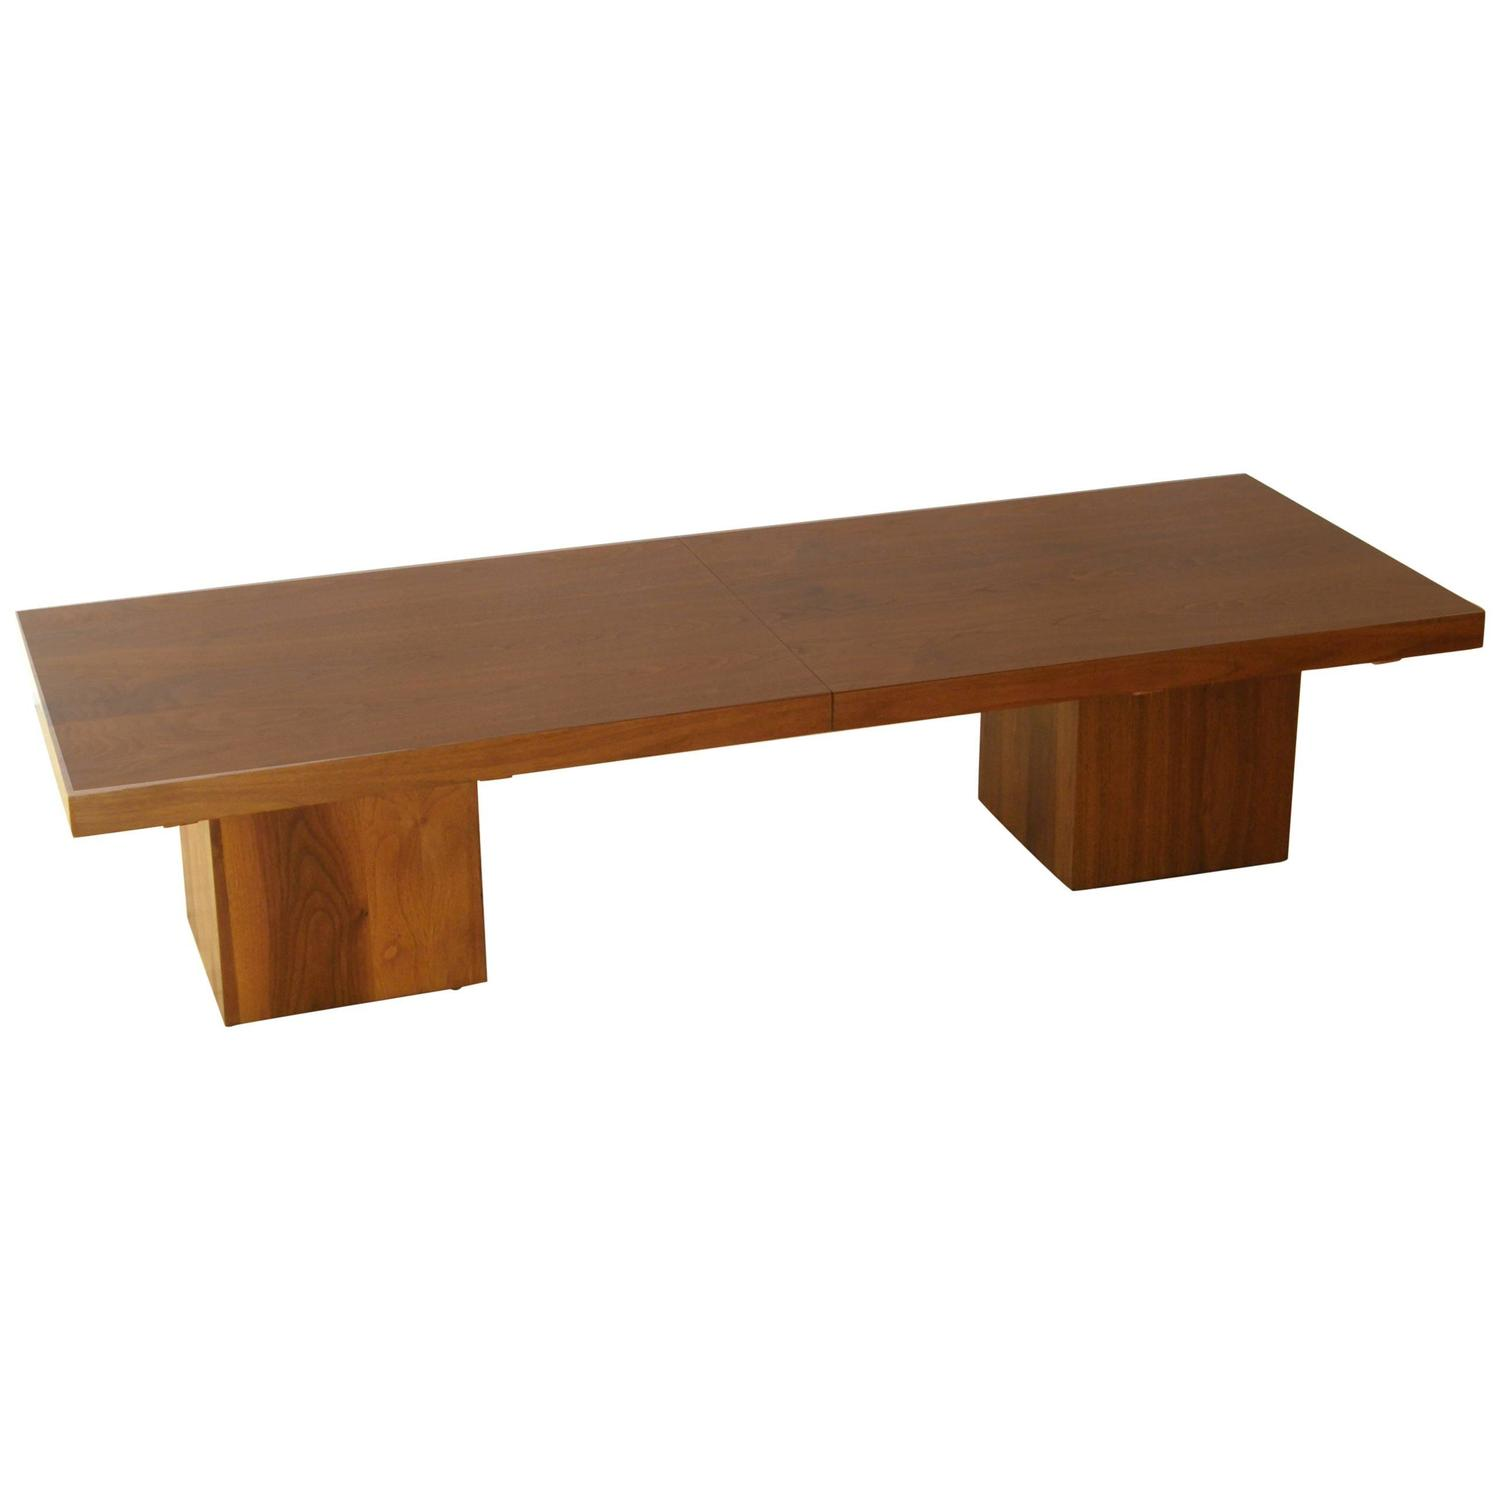 John Keal Expandable Coffee Table For Sale At 1stdibs